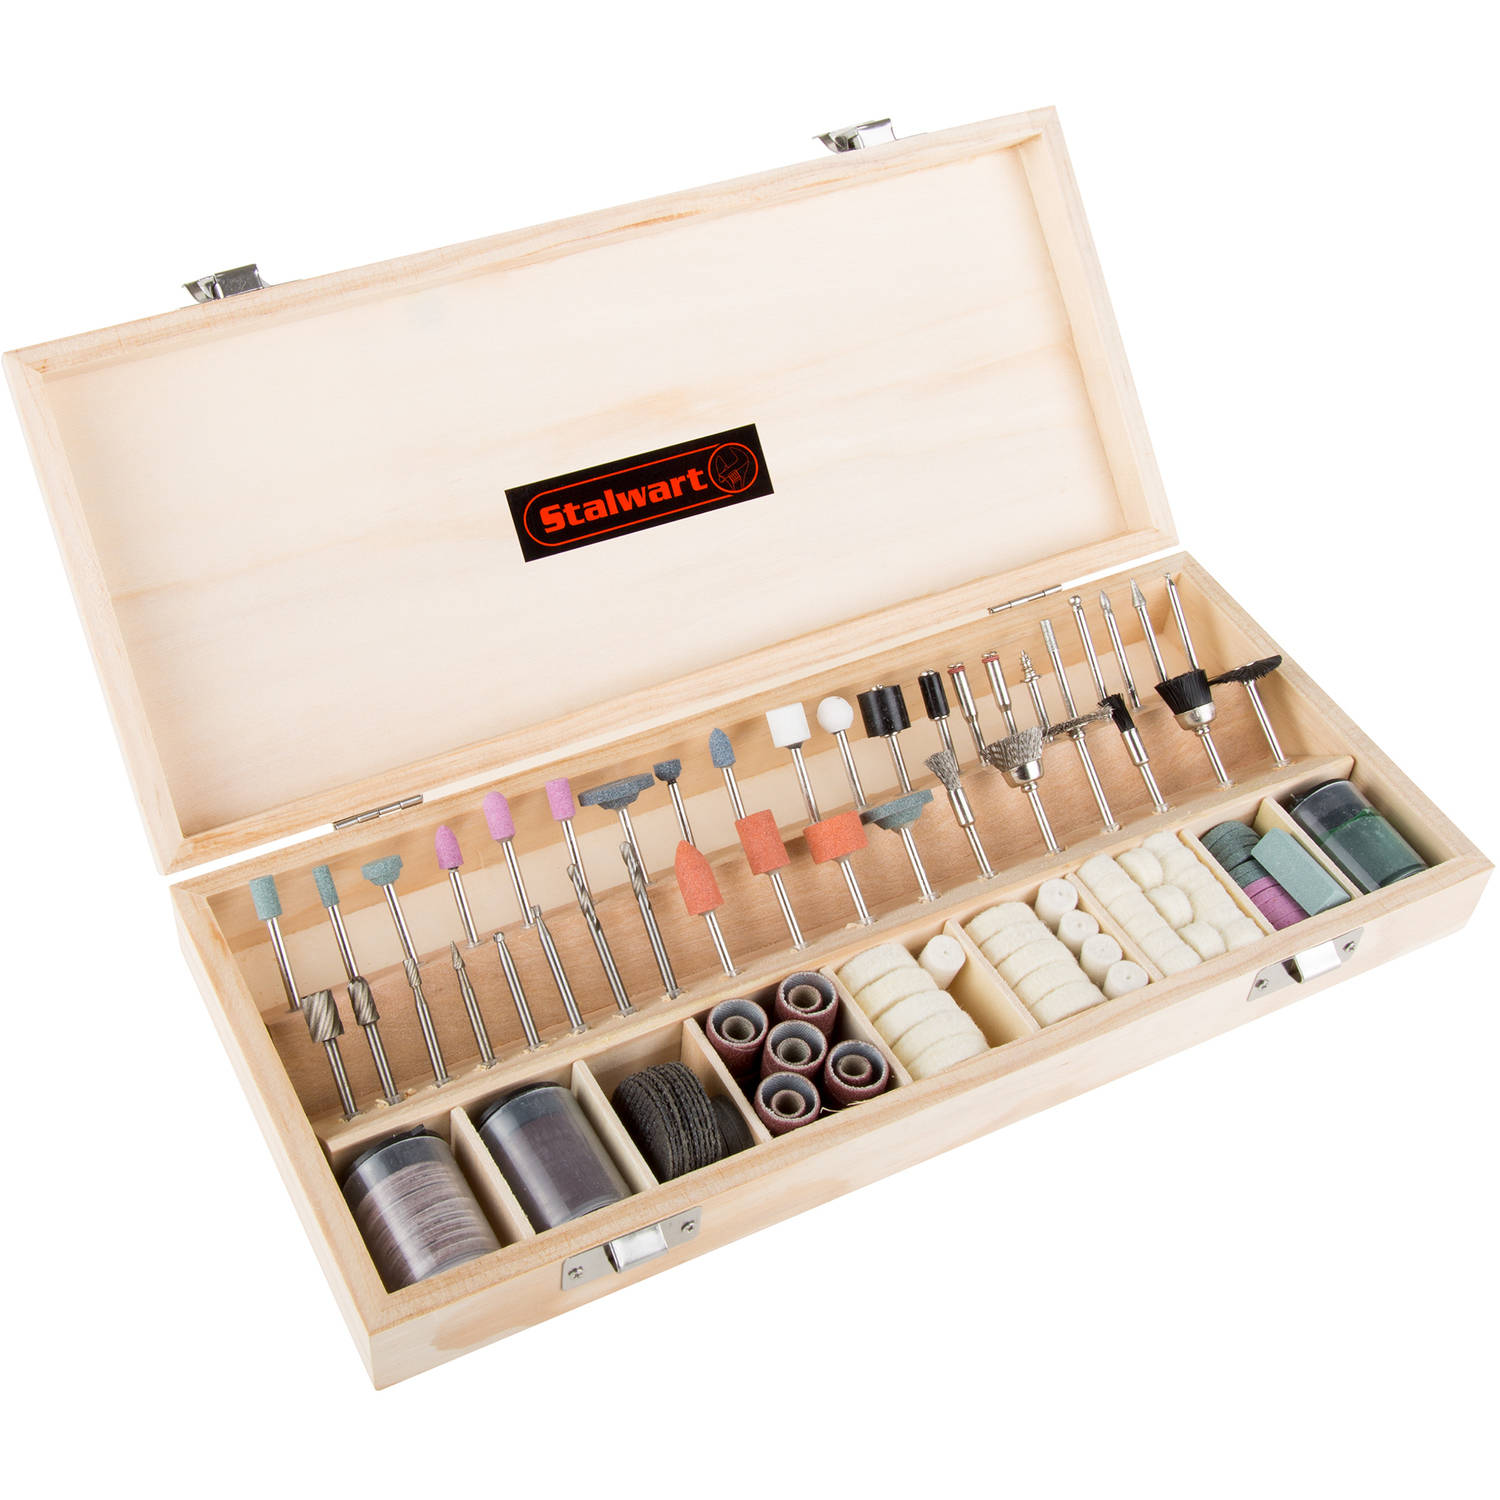 Stalwart 228-Piece Rotary Tool Accessories Kit in Wooden Case